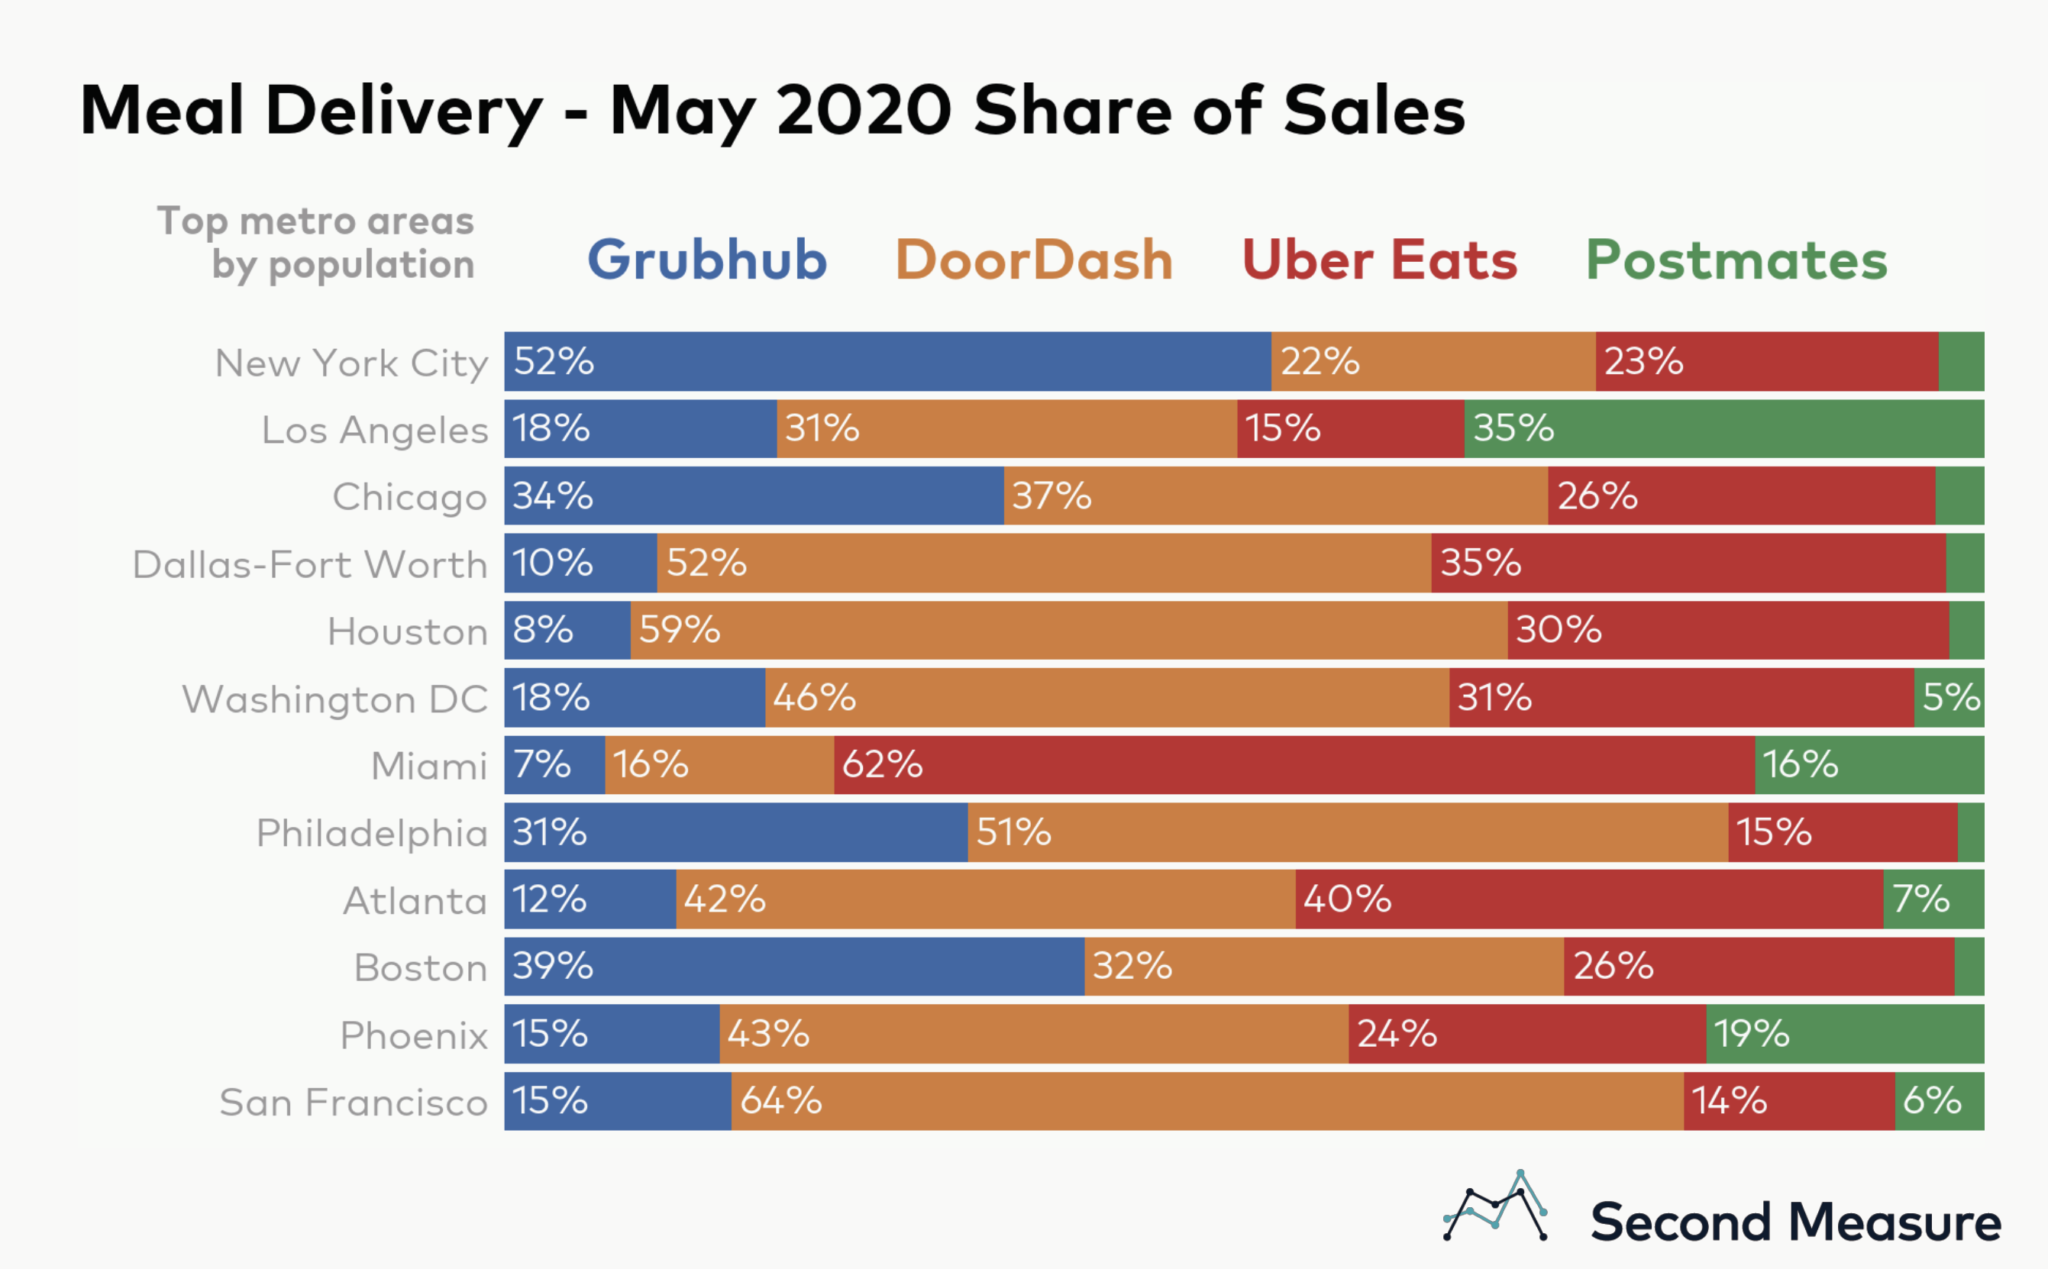 Meal delivery - May 2020 share of sales